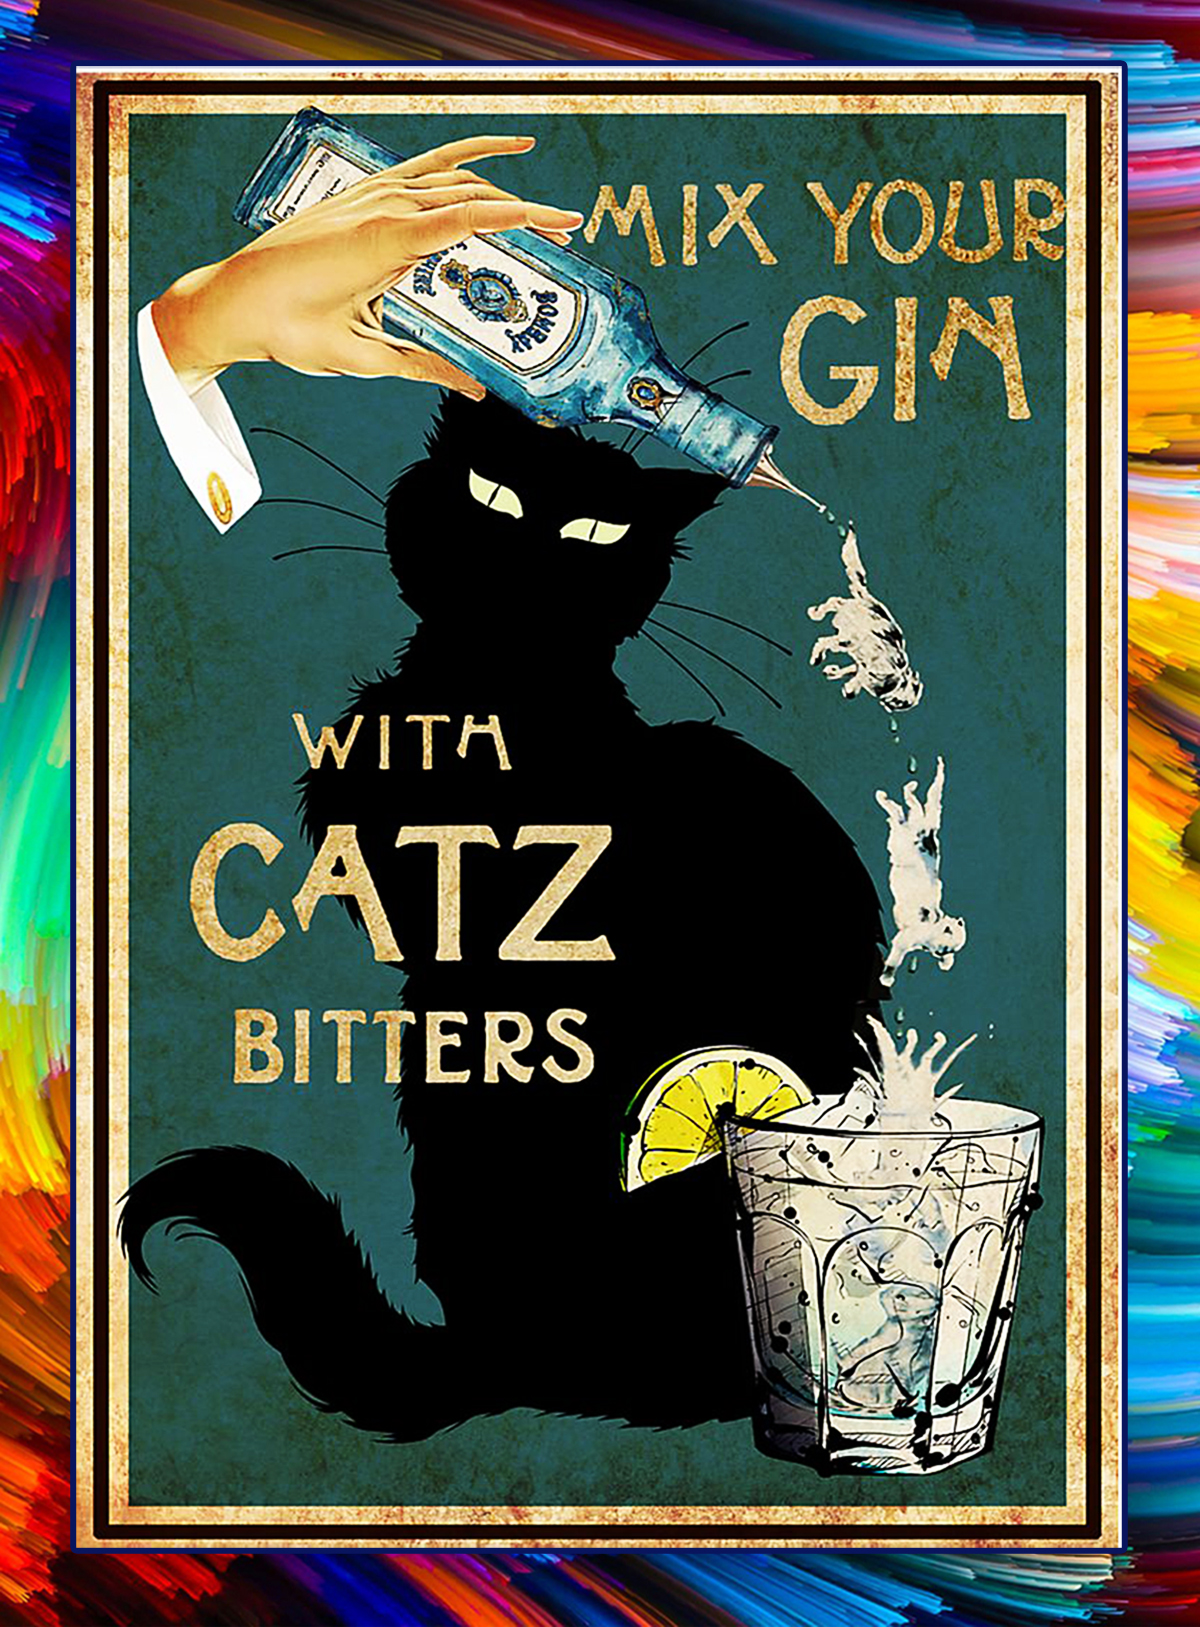 Cat Mix your gin with catz bitter poster - A1